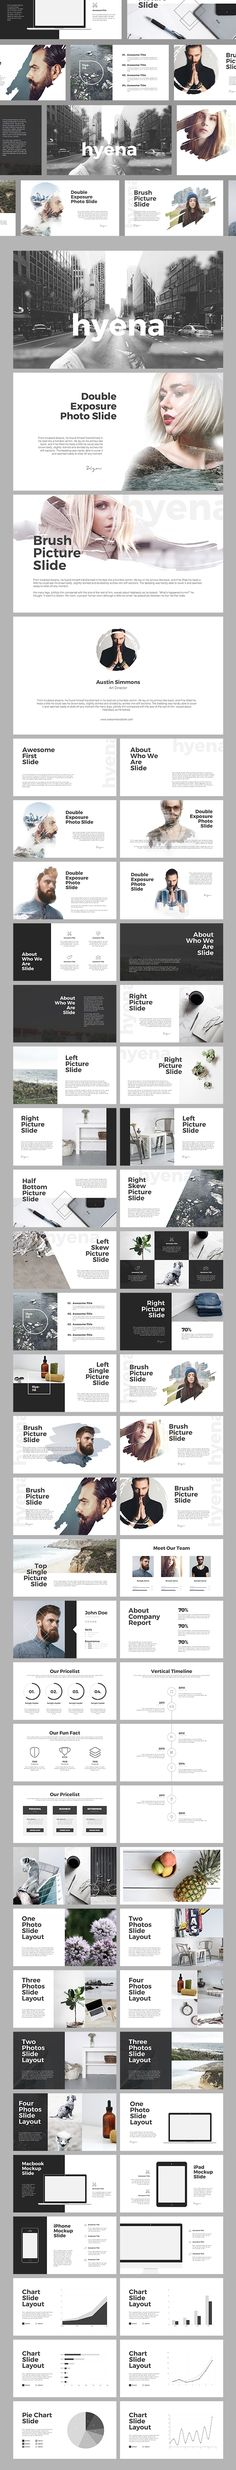 HYENA - PowerPoint Template - PowerPoint Templates Presentation Templates